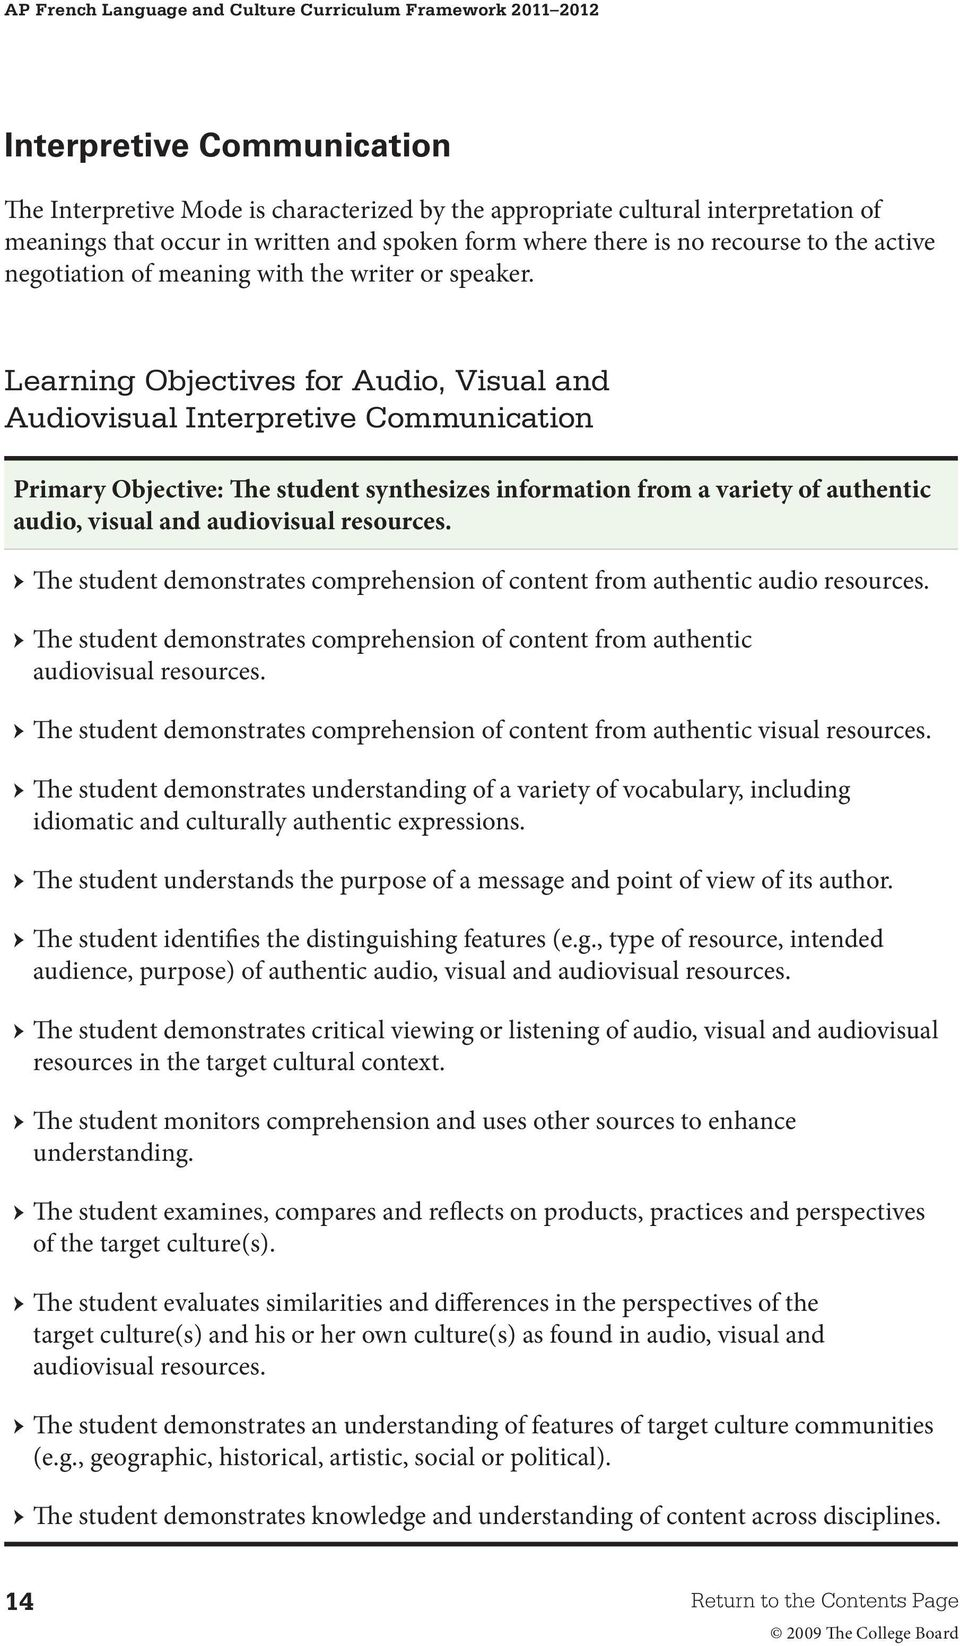 Learning Objectives for Audio, Visual and Audiovisual Interpretive Communication Primary Objective: The student synthesizes information from a variety of authentic audio, visual and audiovisual